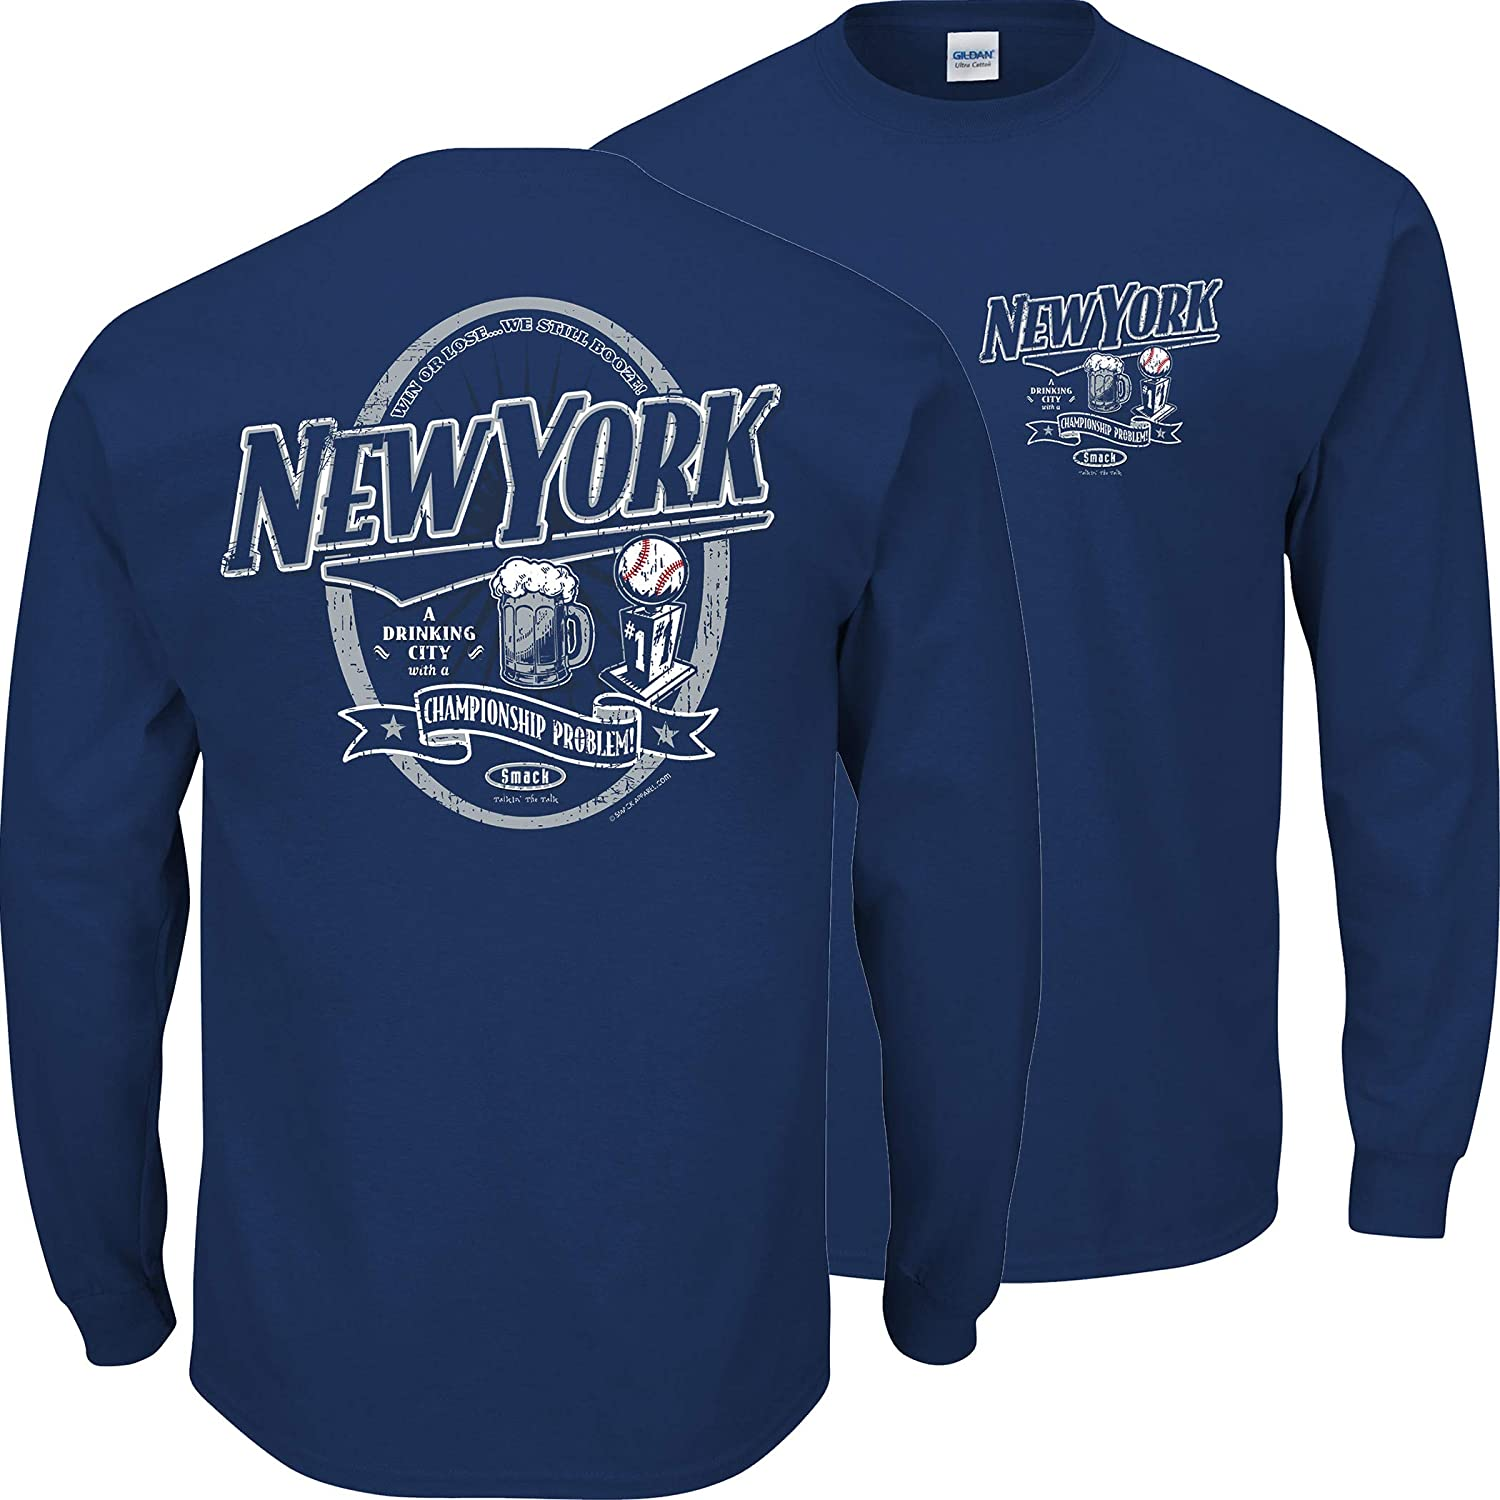 A Drinking City with a Championship Problem Navy T-Shirt Sm-5X Smack Apparel New York Baseball Fans